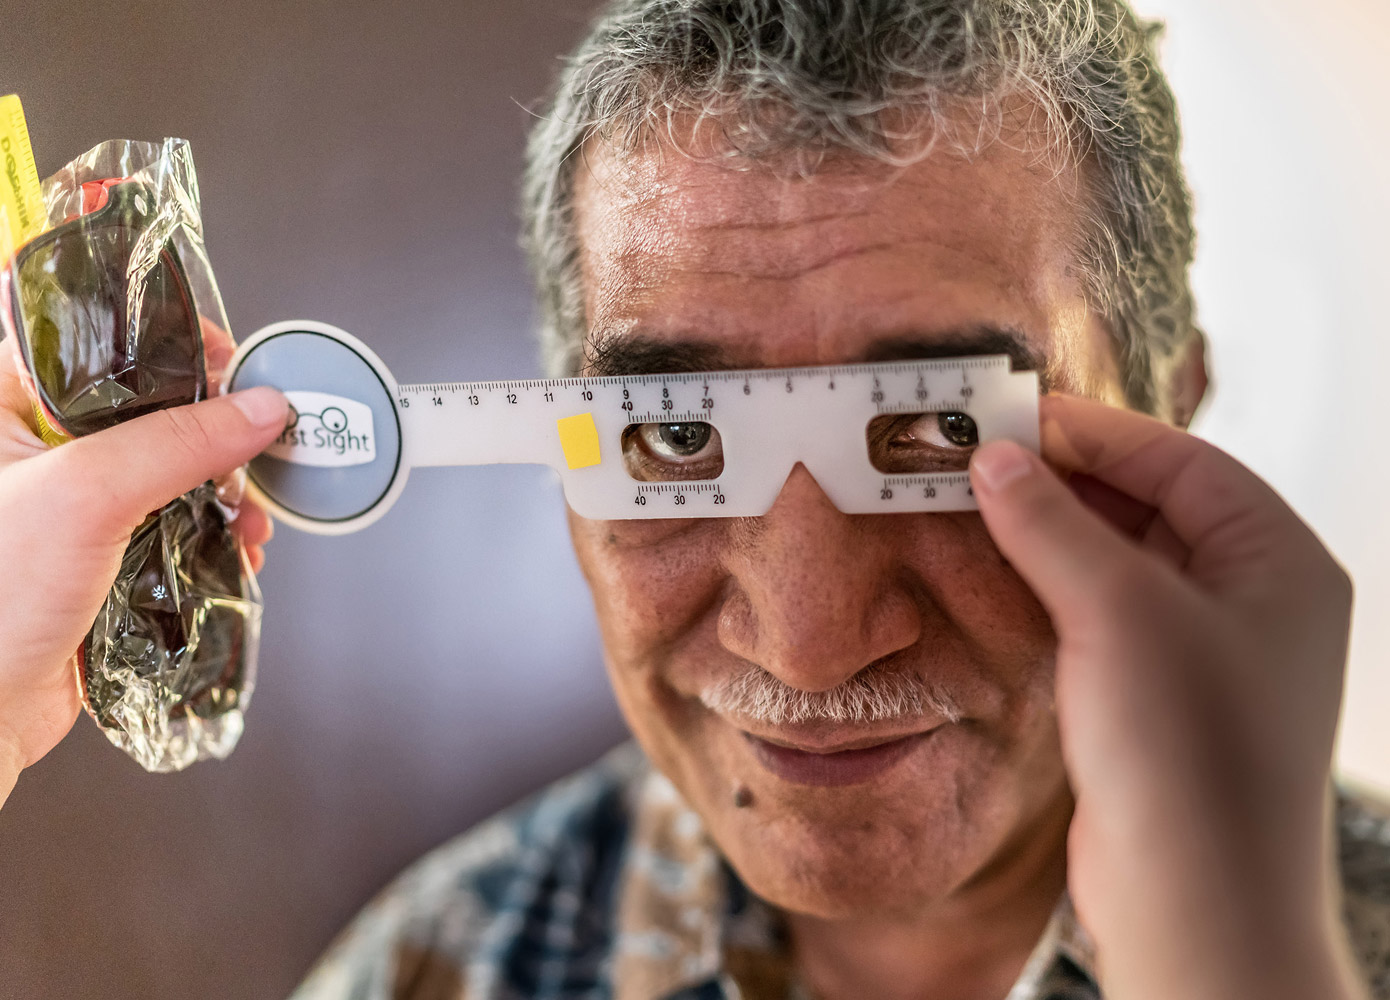 Moran Eye Center Global Outreach 2016, © Michael Schoenfeld, Salt Lake City, UT, United States, Professional : Commercial/Editorial/Assignment, PDN Faces - Portrait Photography Contest